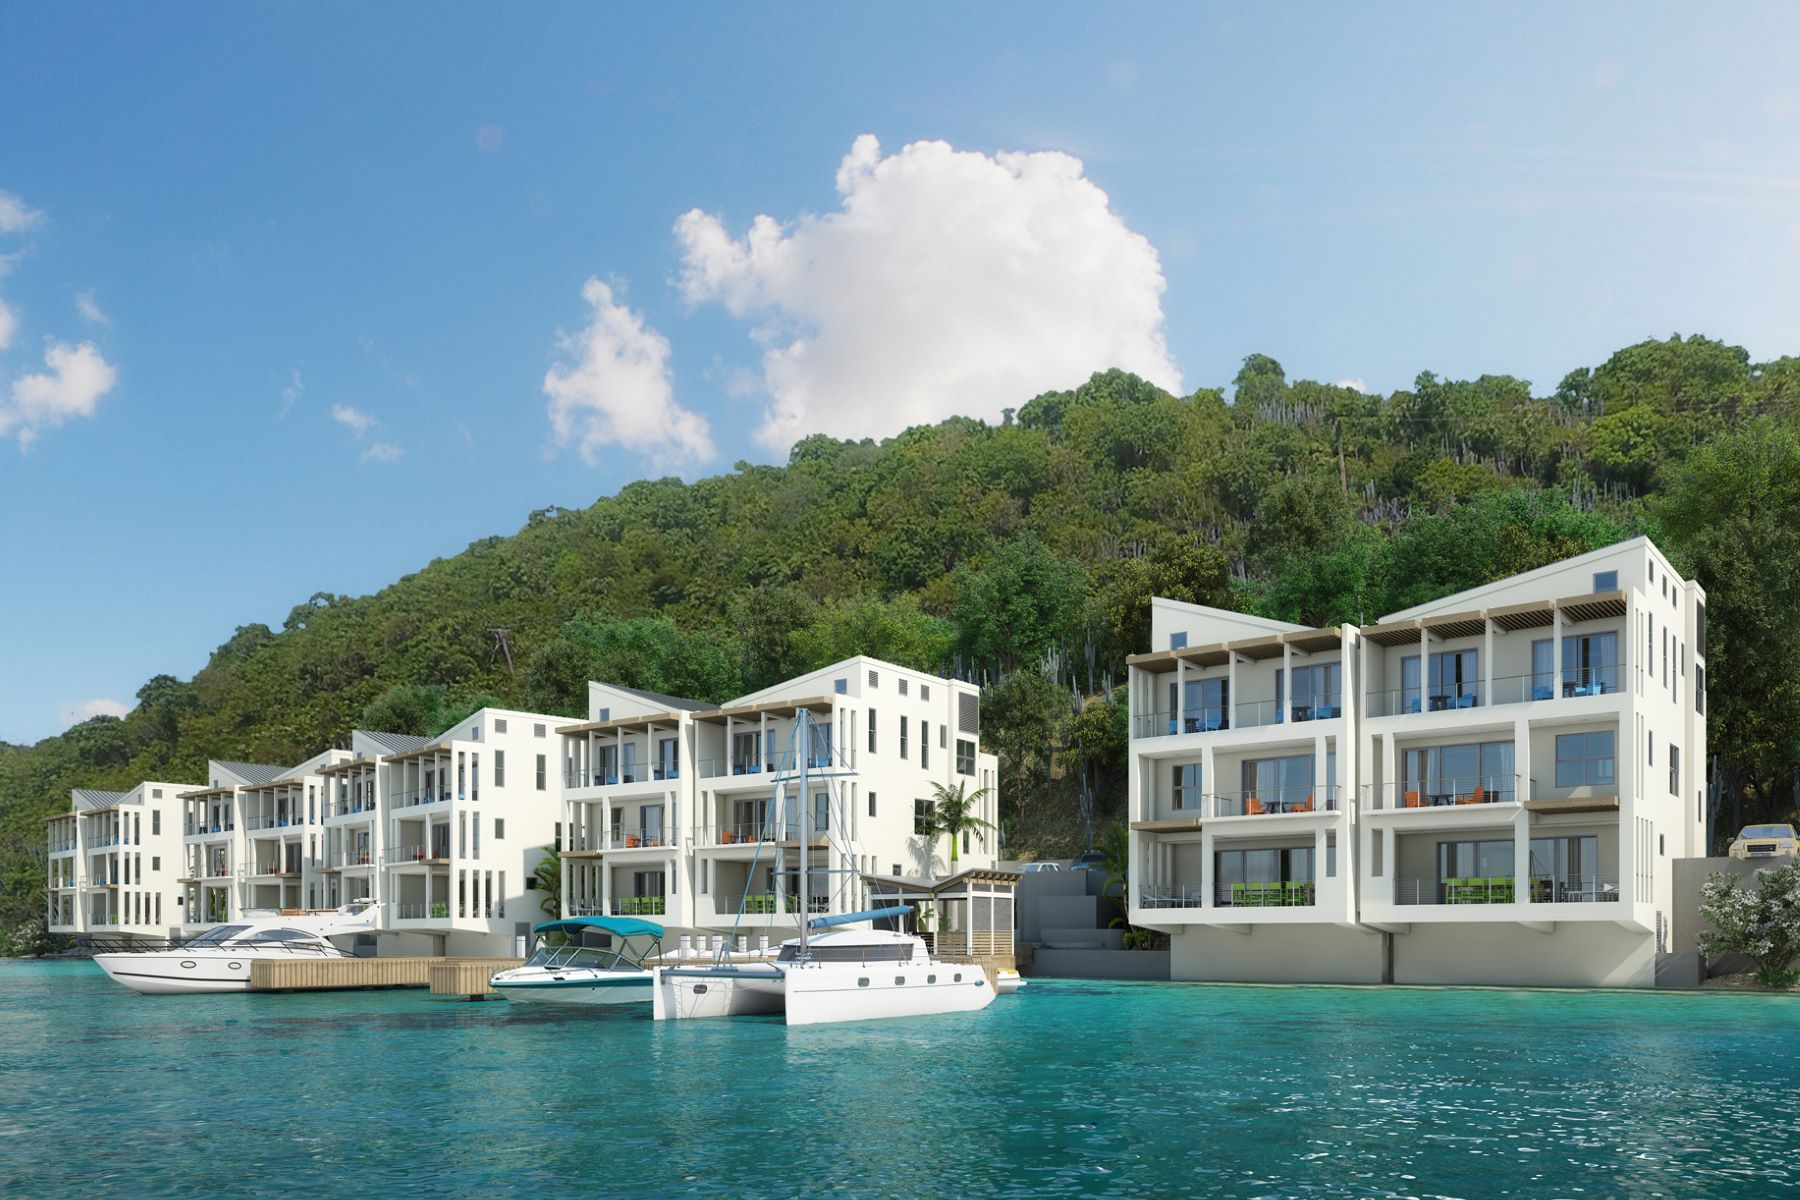 Condominium for Sale at Brandywine Bay Oceanfront Condos Other Tortola, Tortola British Virgin Islands